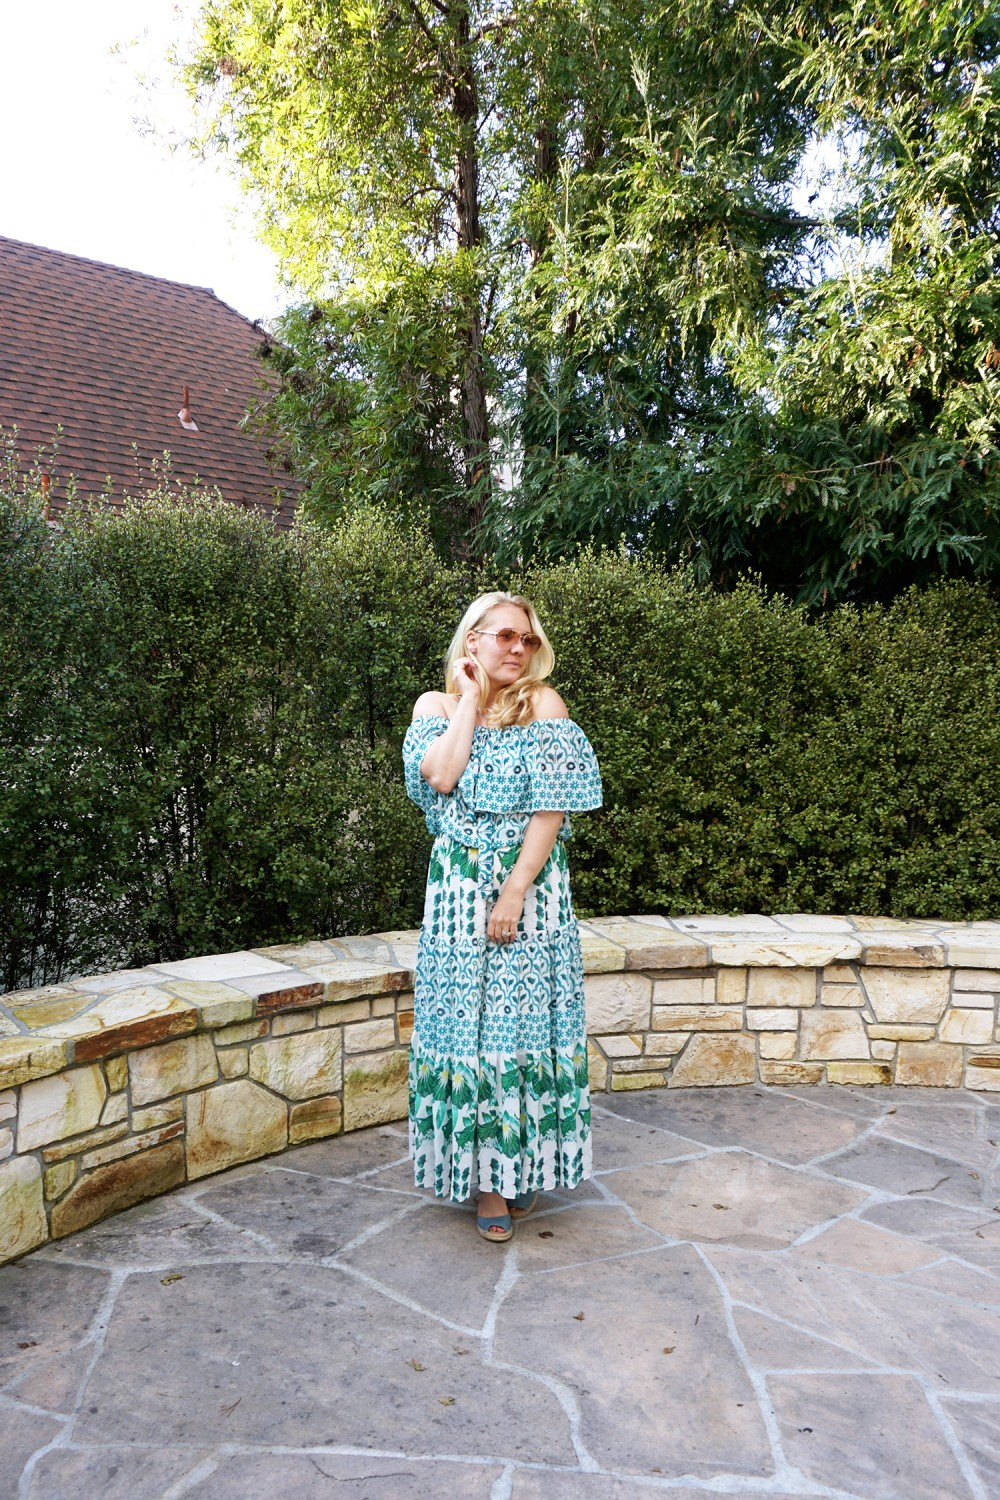 Off The Shoulder Maxi Dress-Temperley London-Outfit Inspiration-Wine Tasting-Visit Carmel by the Sea-Have Need Want 9